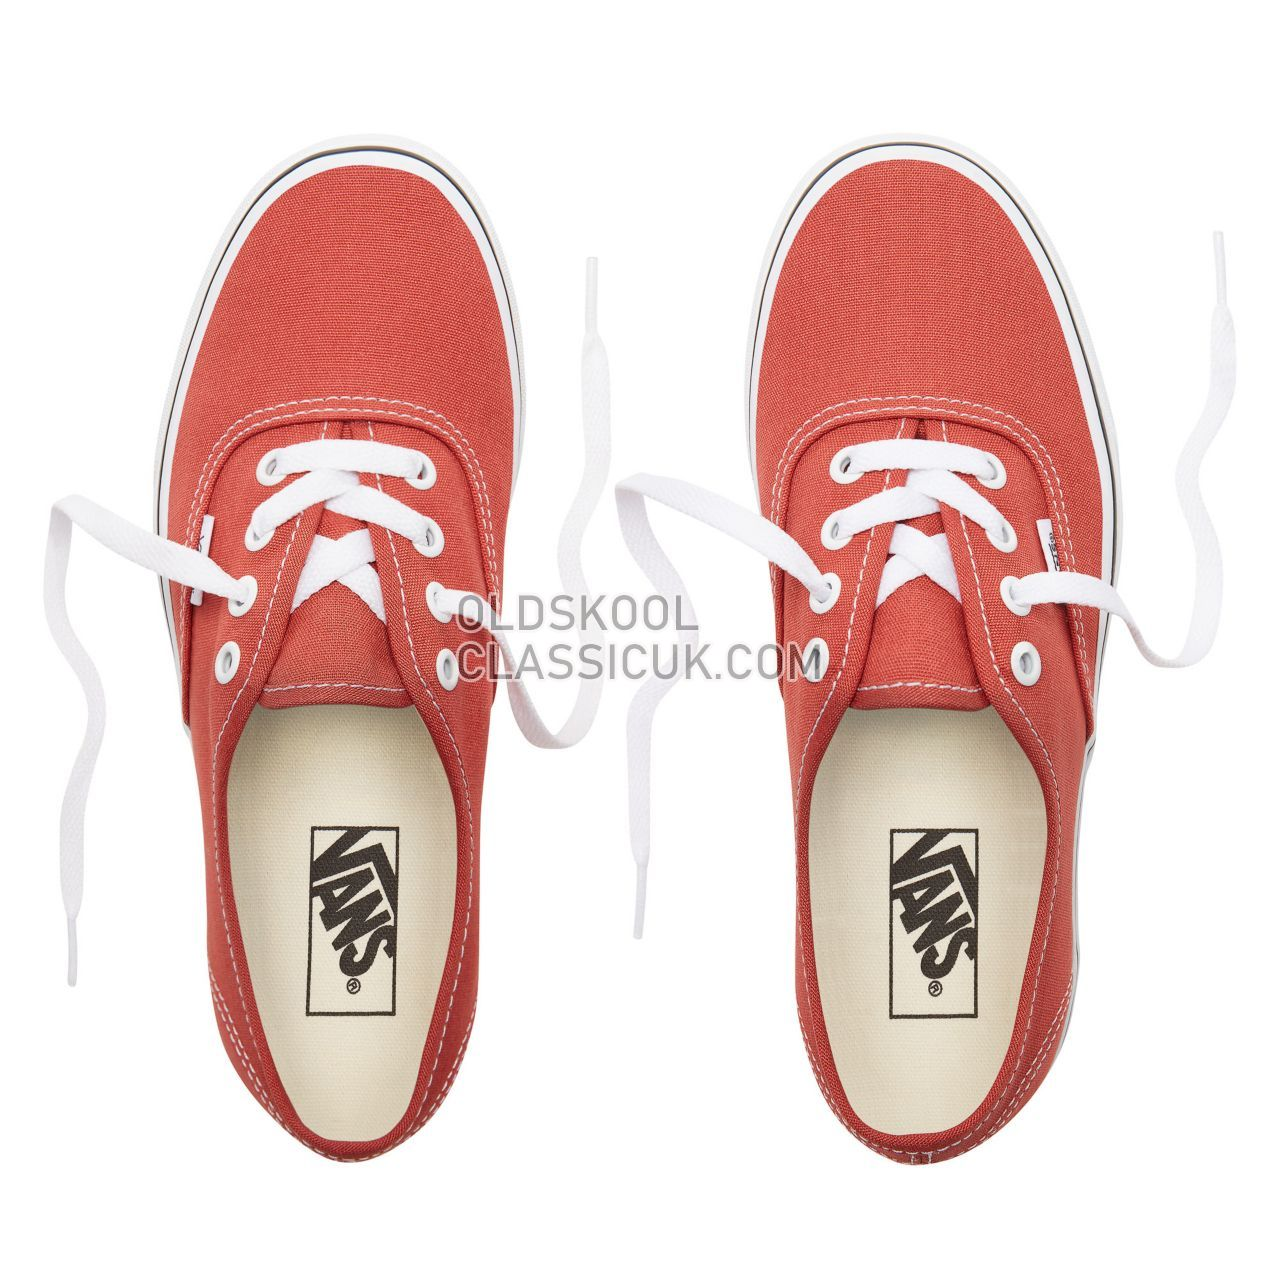 Vans Authentic Sneakers Womens Hot Sauce/True White VN0A38EMUKZ Shoes